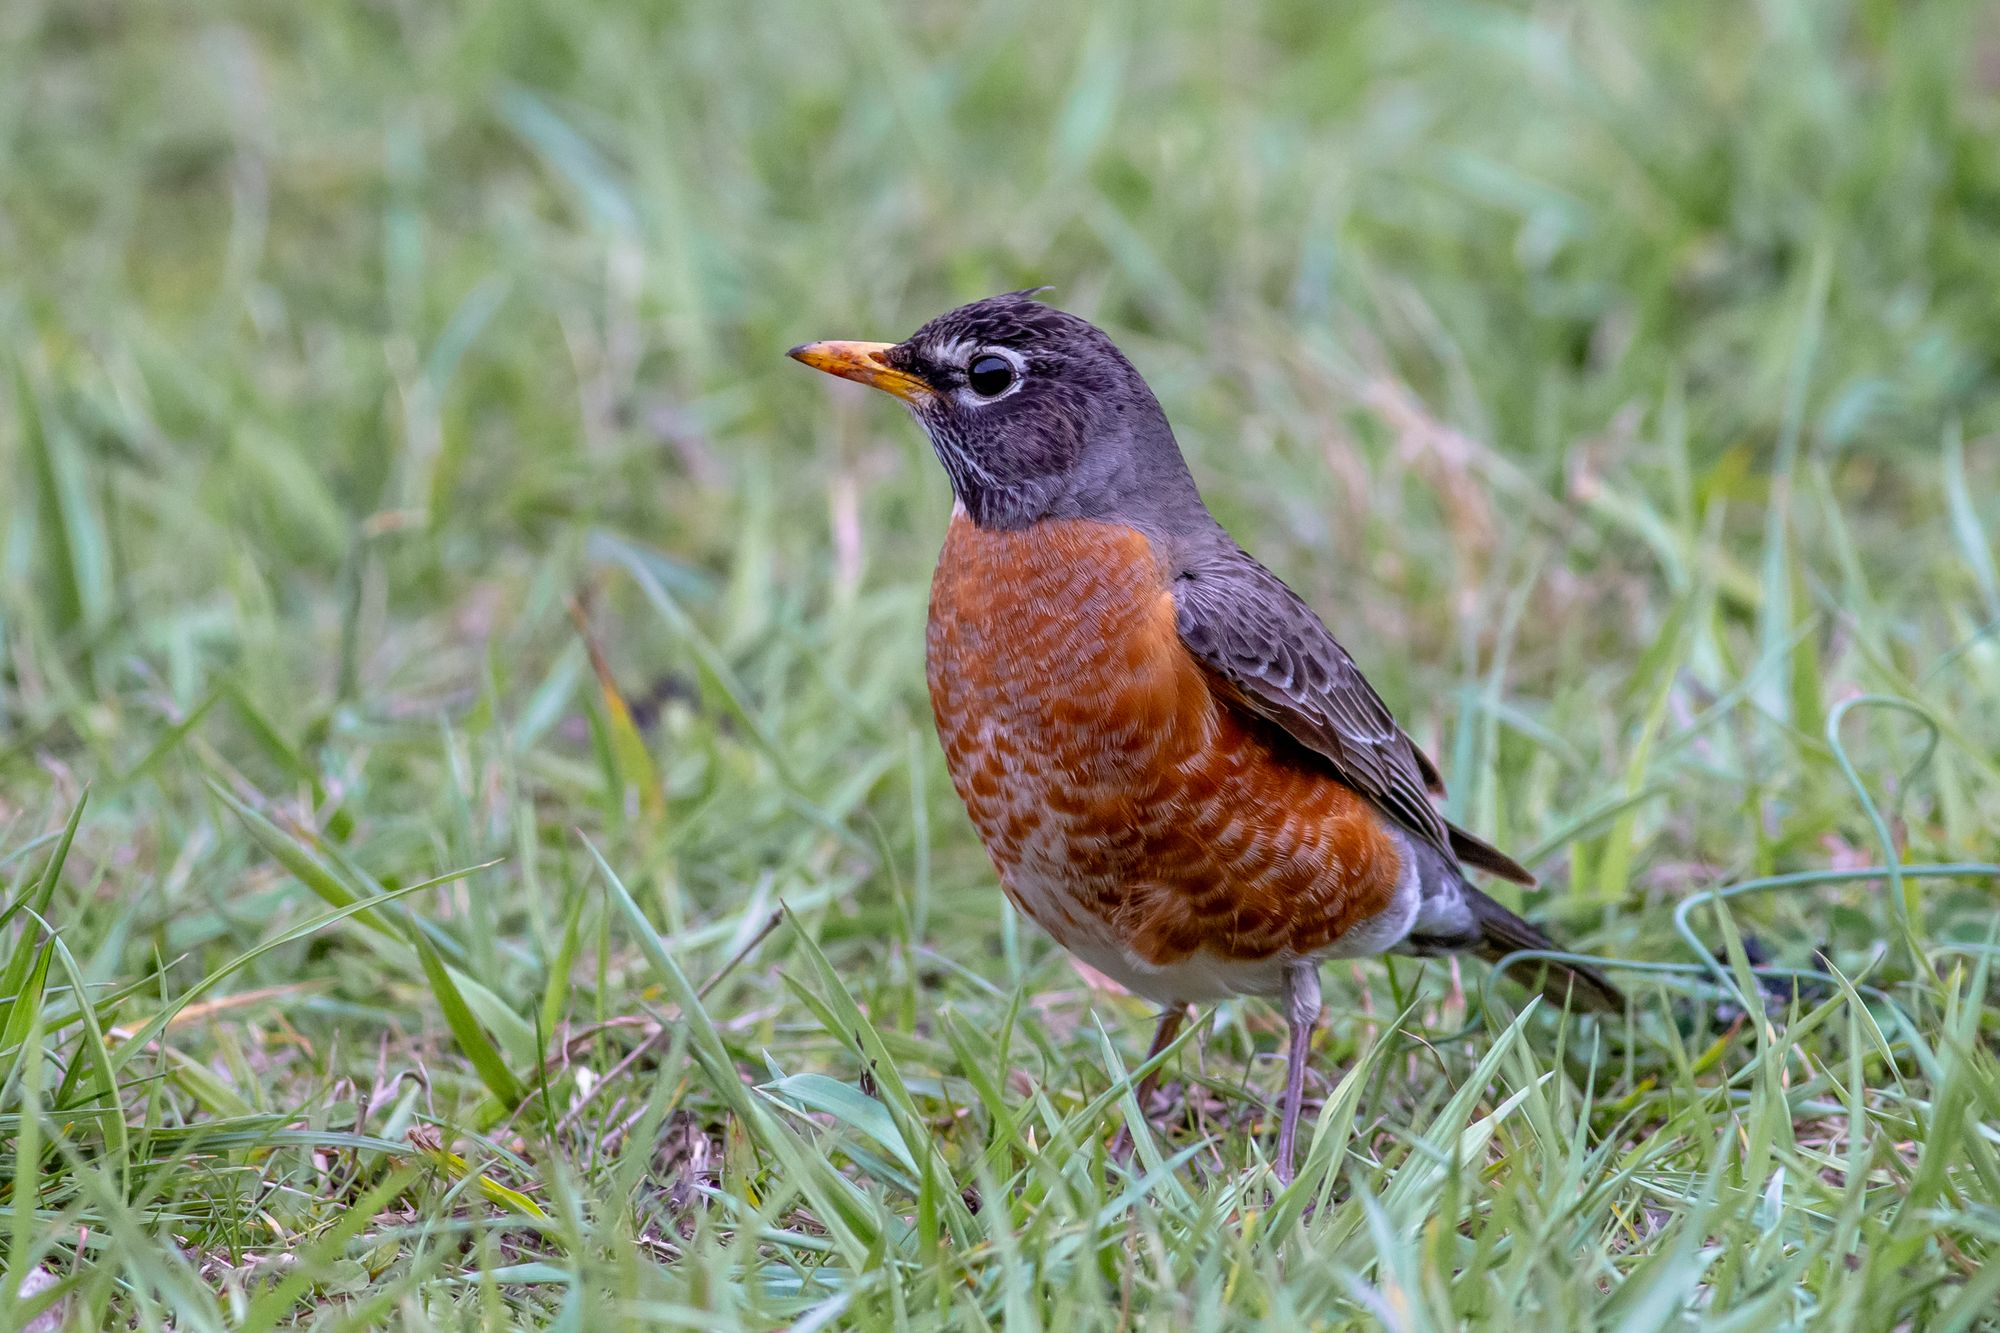 American Robin at Great Smoky Mountains National Park